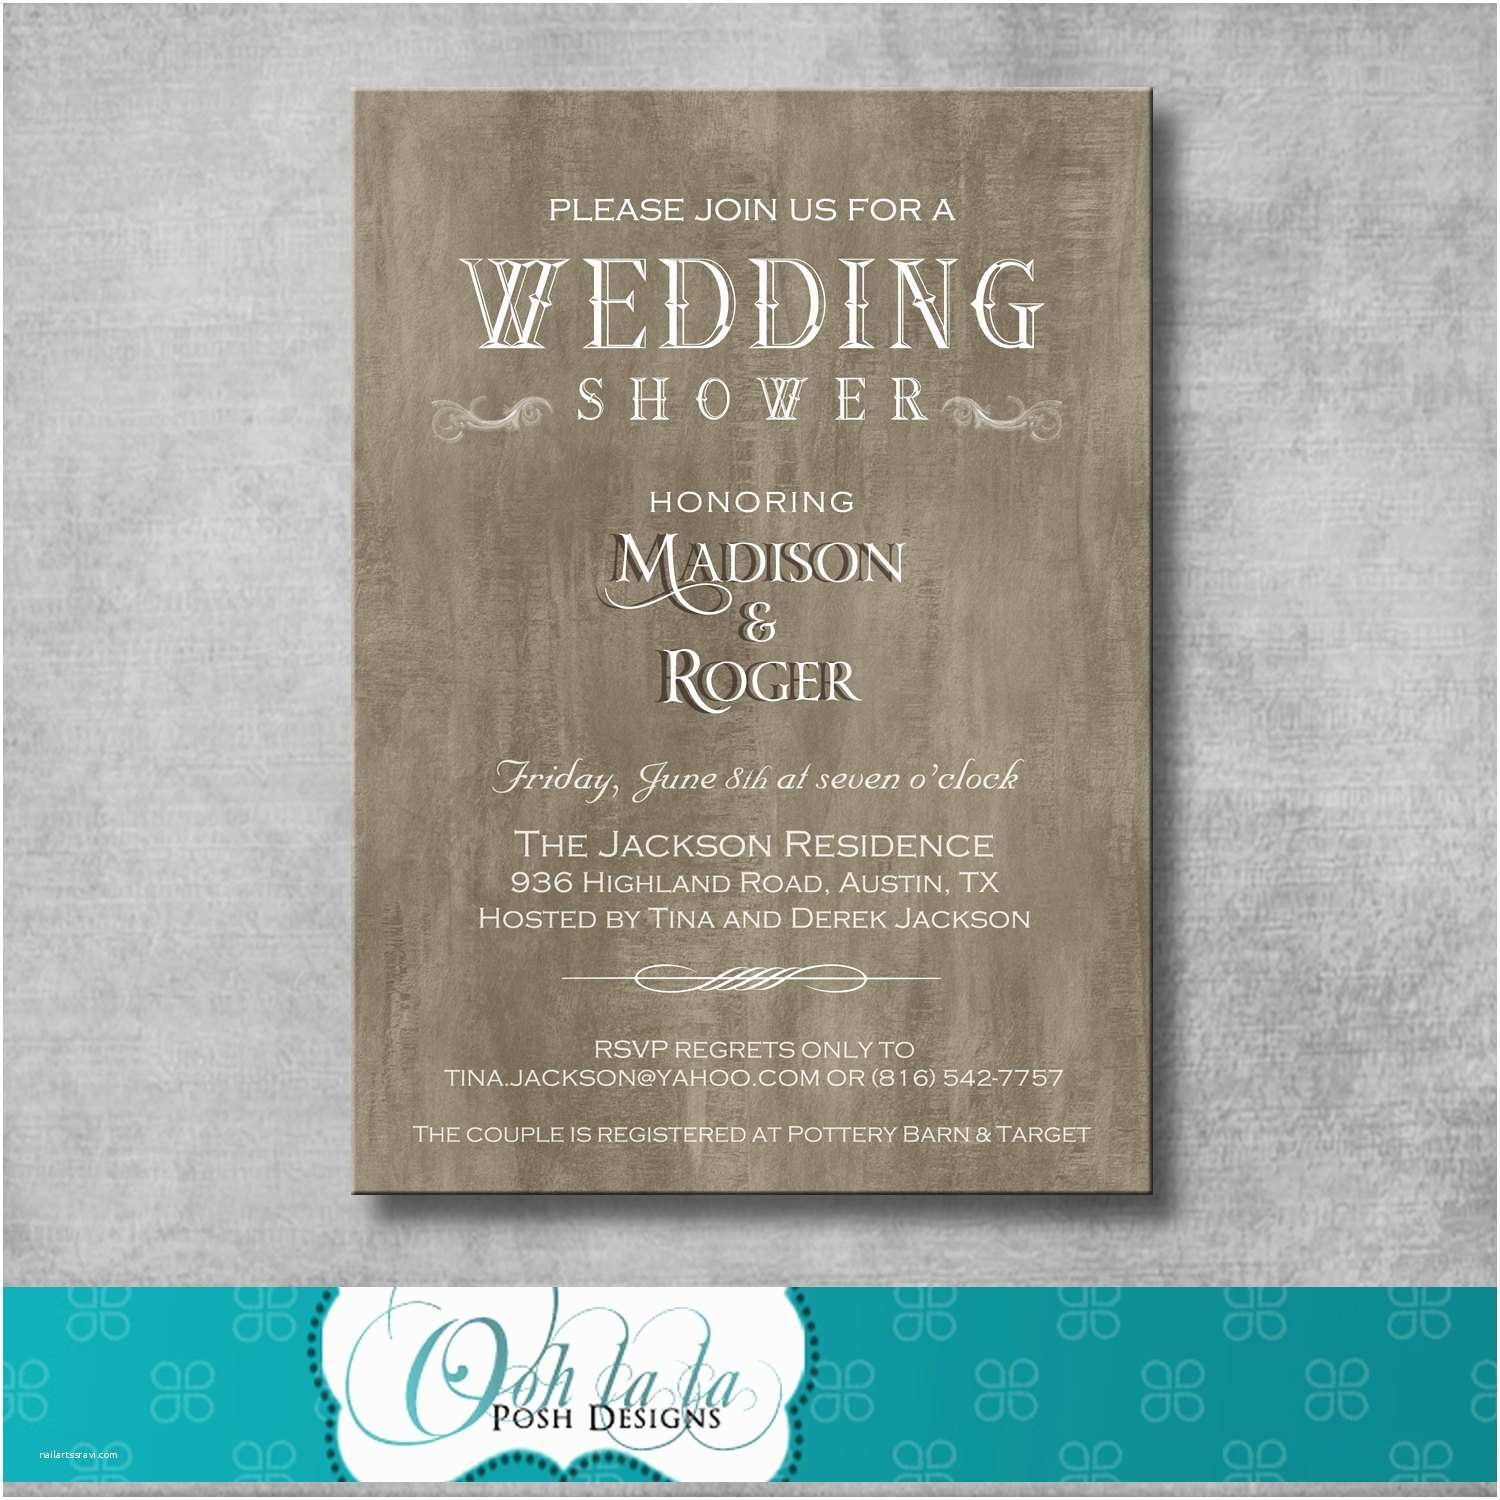 Elegant Wedding Shower Invitations Rustic Elegant Wedding Shower Invitation by Oohlalaposhdesigns